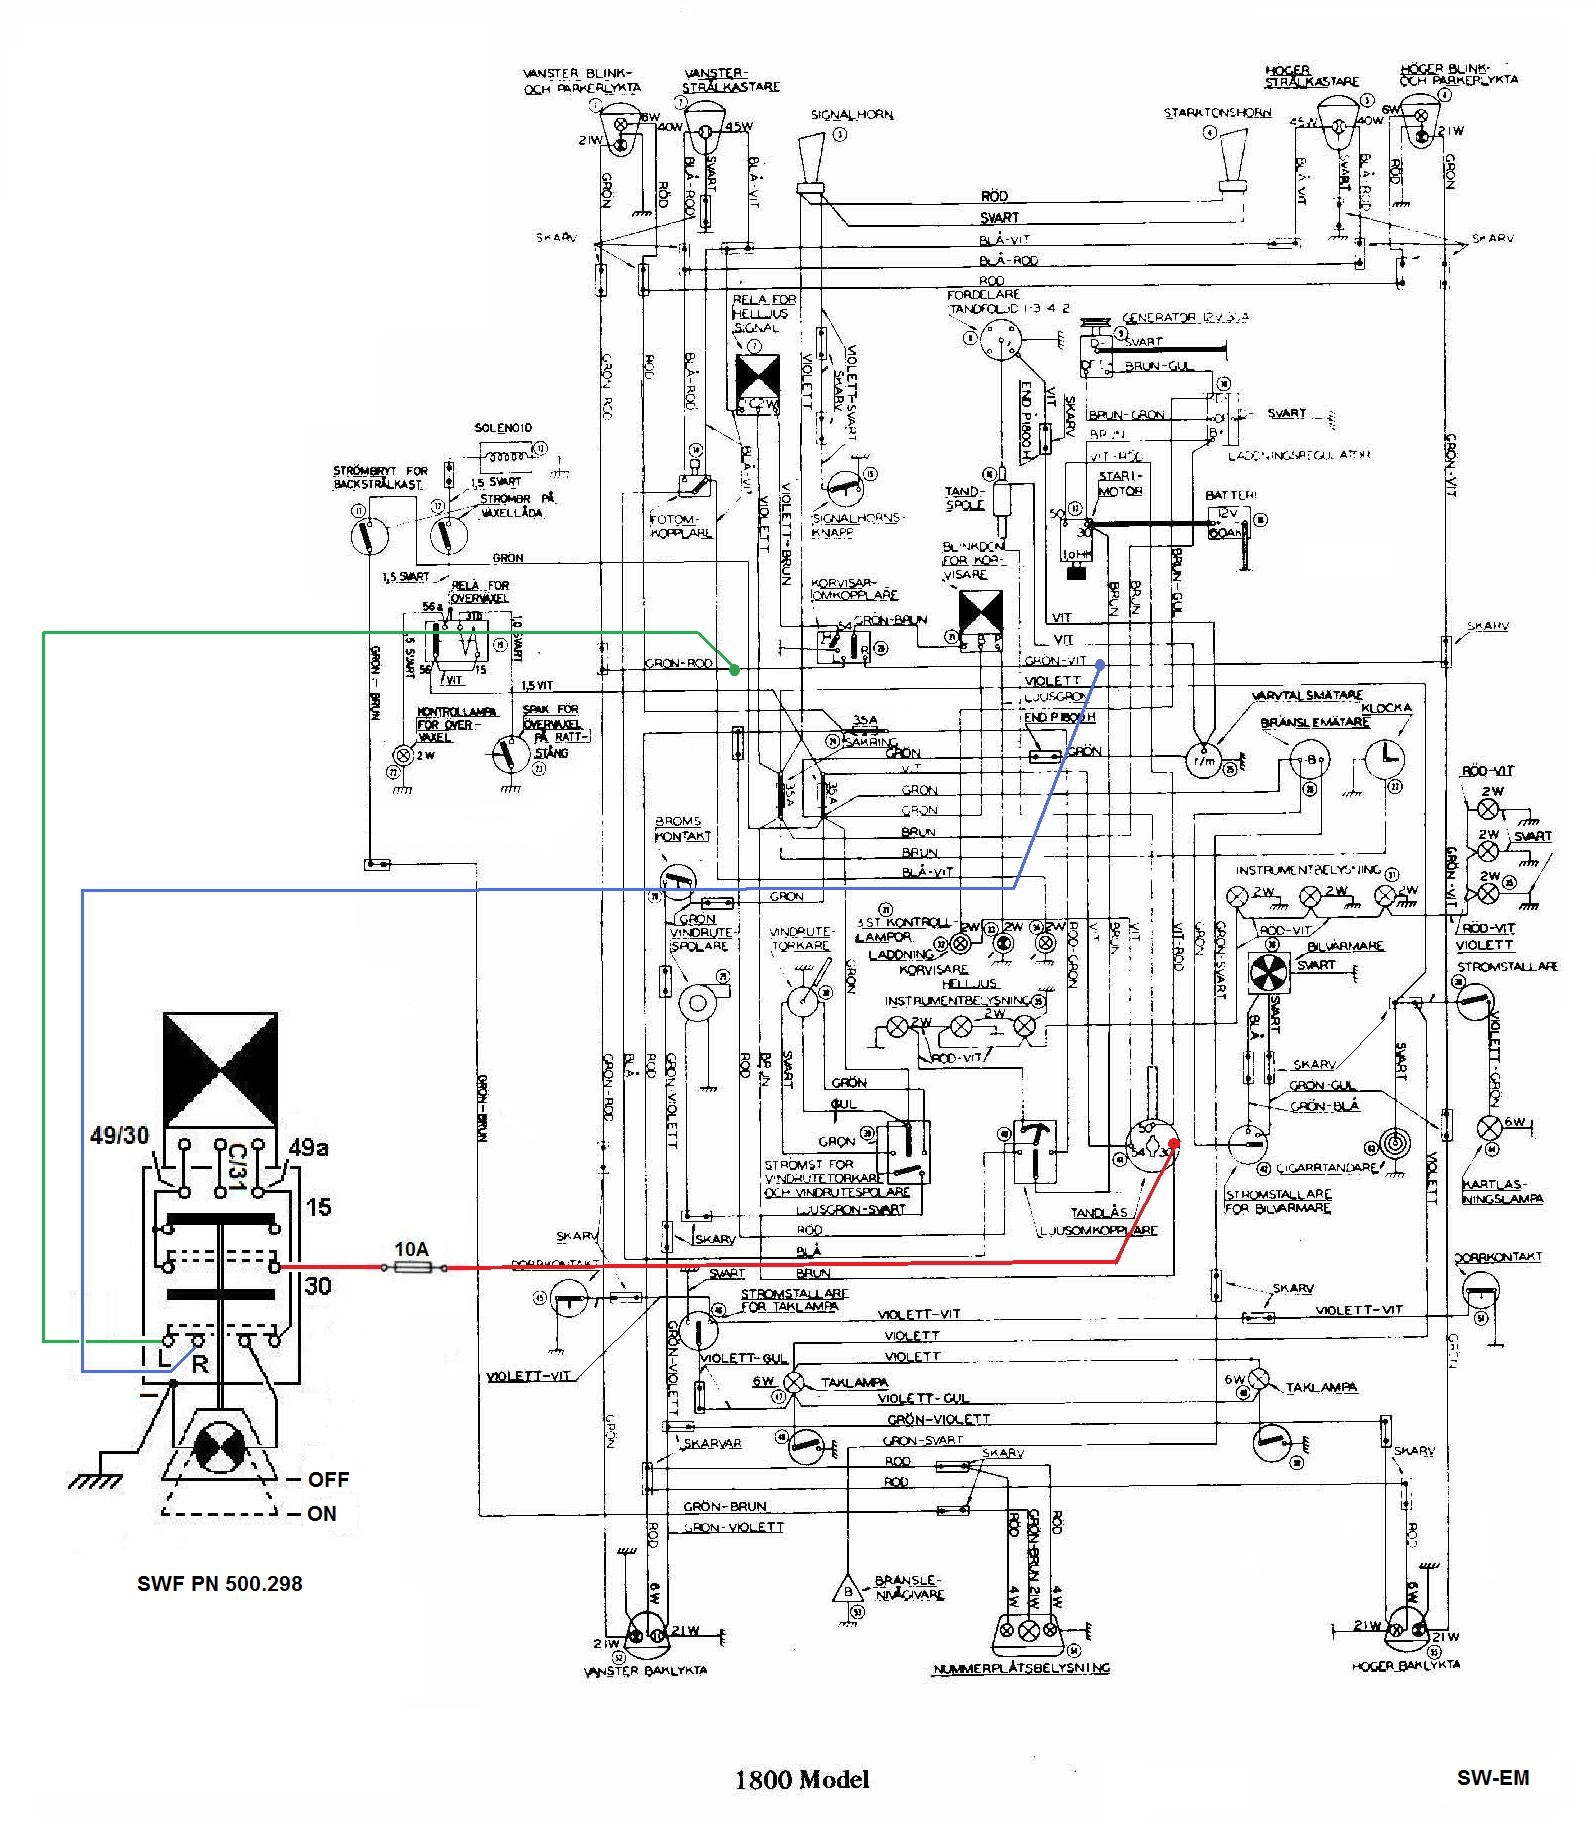 1800_Wiring_Diagram_SWF_E flasher_Switch sw em emergency flasher flasher wiring diagram at gsmx.co